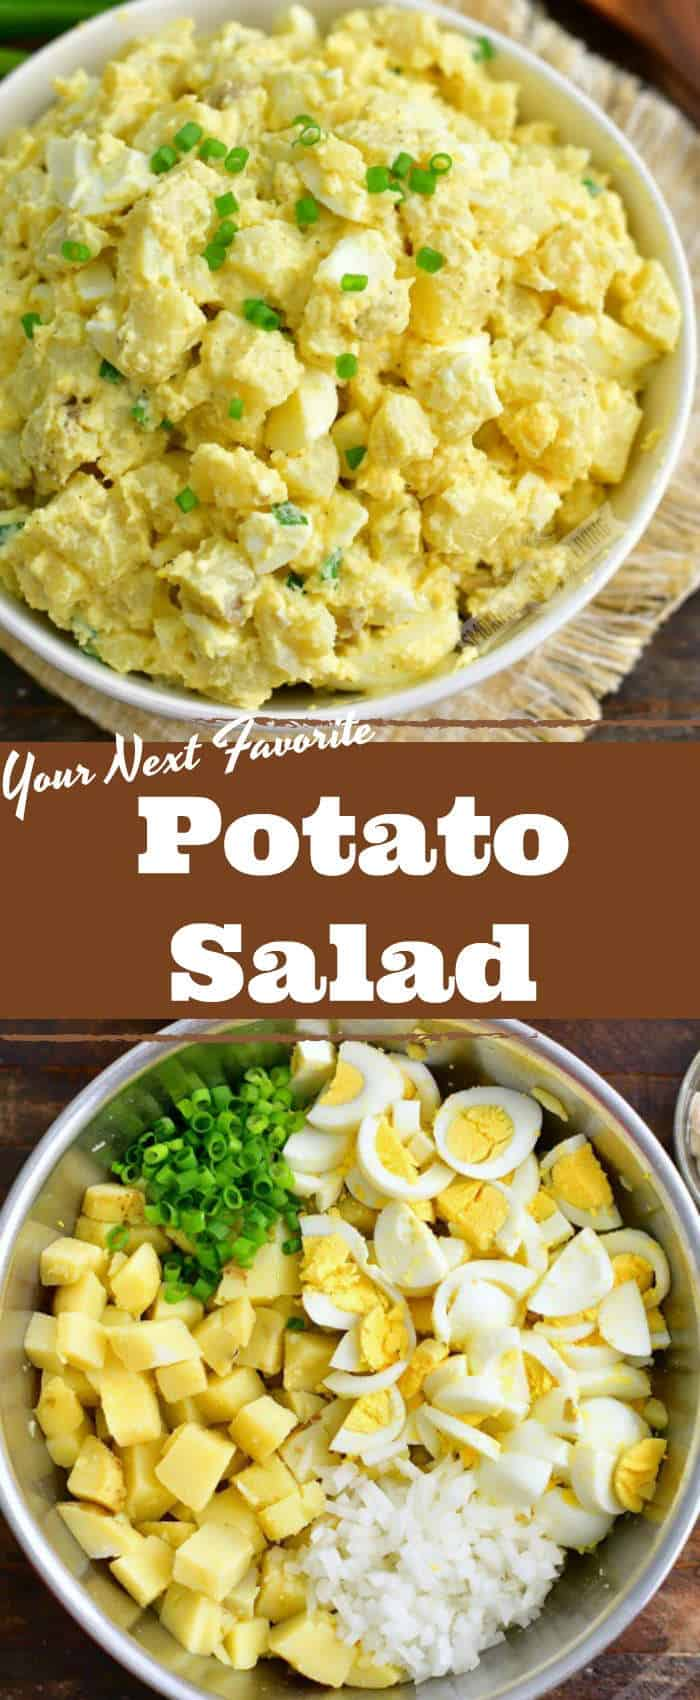 collage of two images of mixed potato salad in a white bowl on top and mixing bowl with unmixed ingredients on the bottom